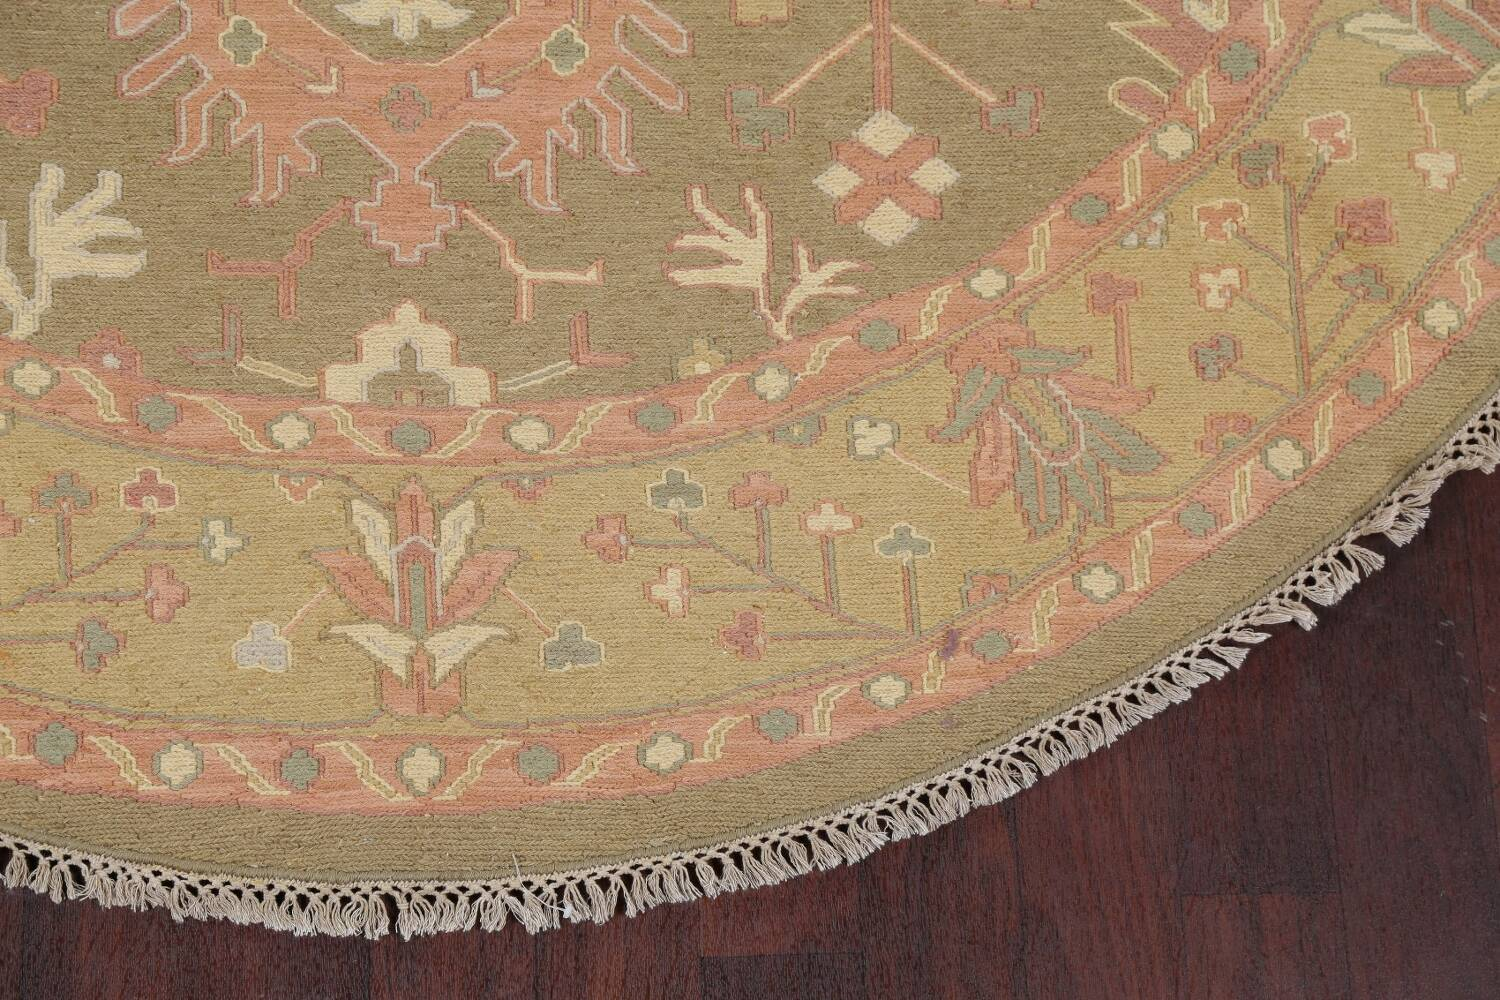 All-Over Green Floral Sumak Oriental Area Rug 8x8 Roud image 5